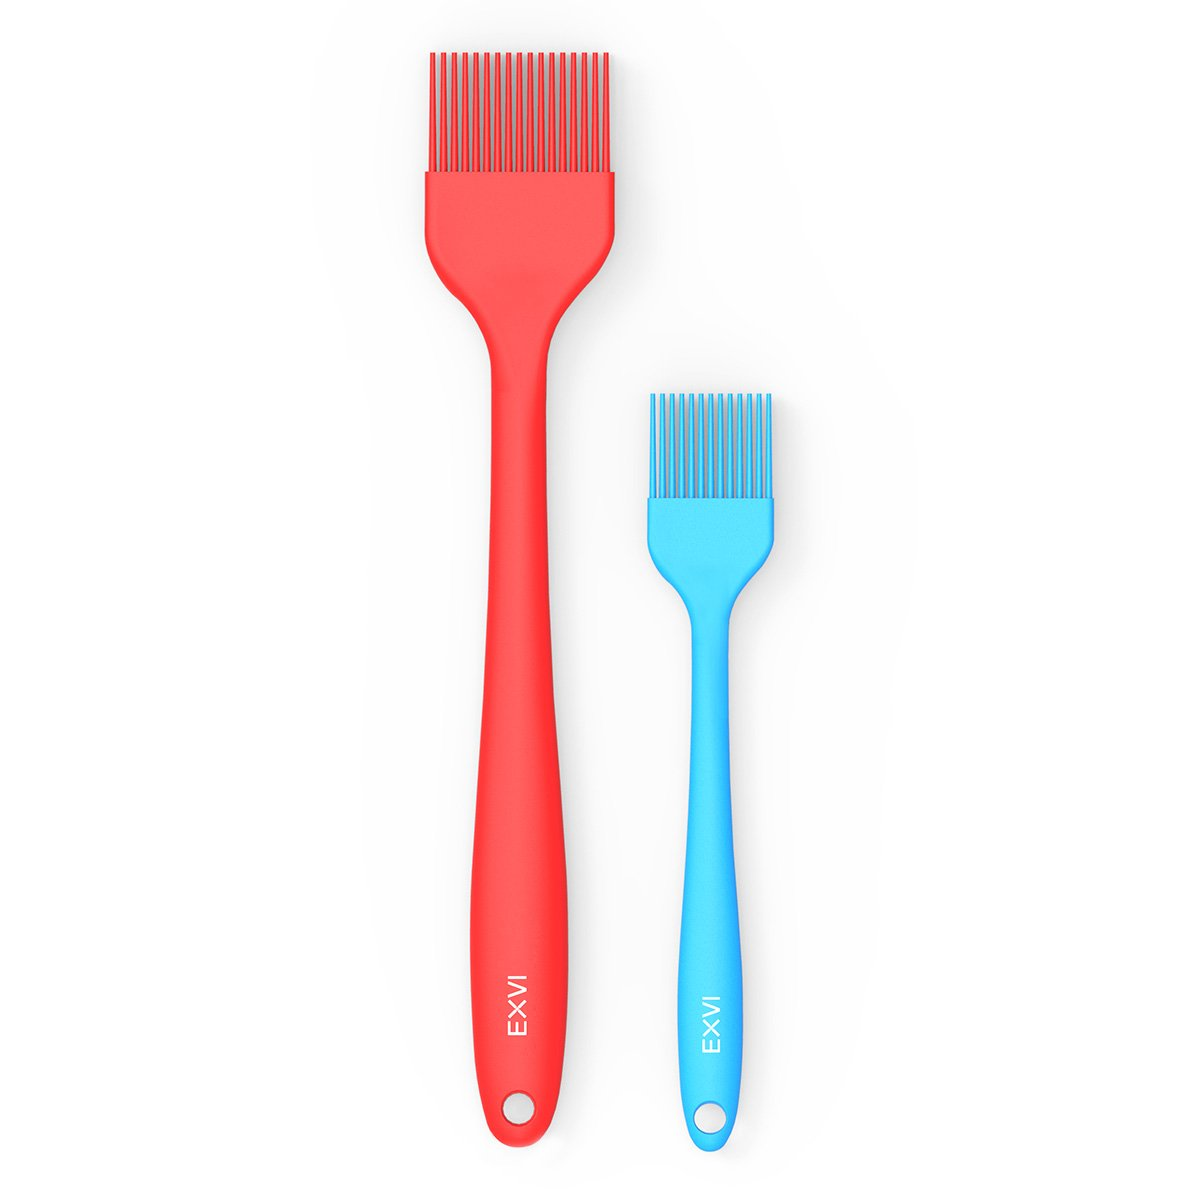 EXVI Heat Resistant 500℉ Silicone Basting & Pastry Brush pack of 2 Totally Safe BPA Free (1x 8